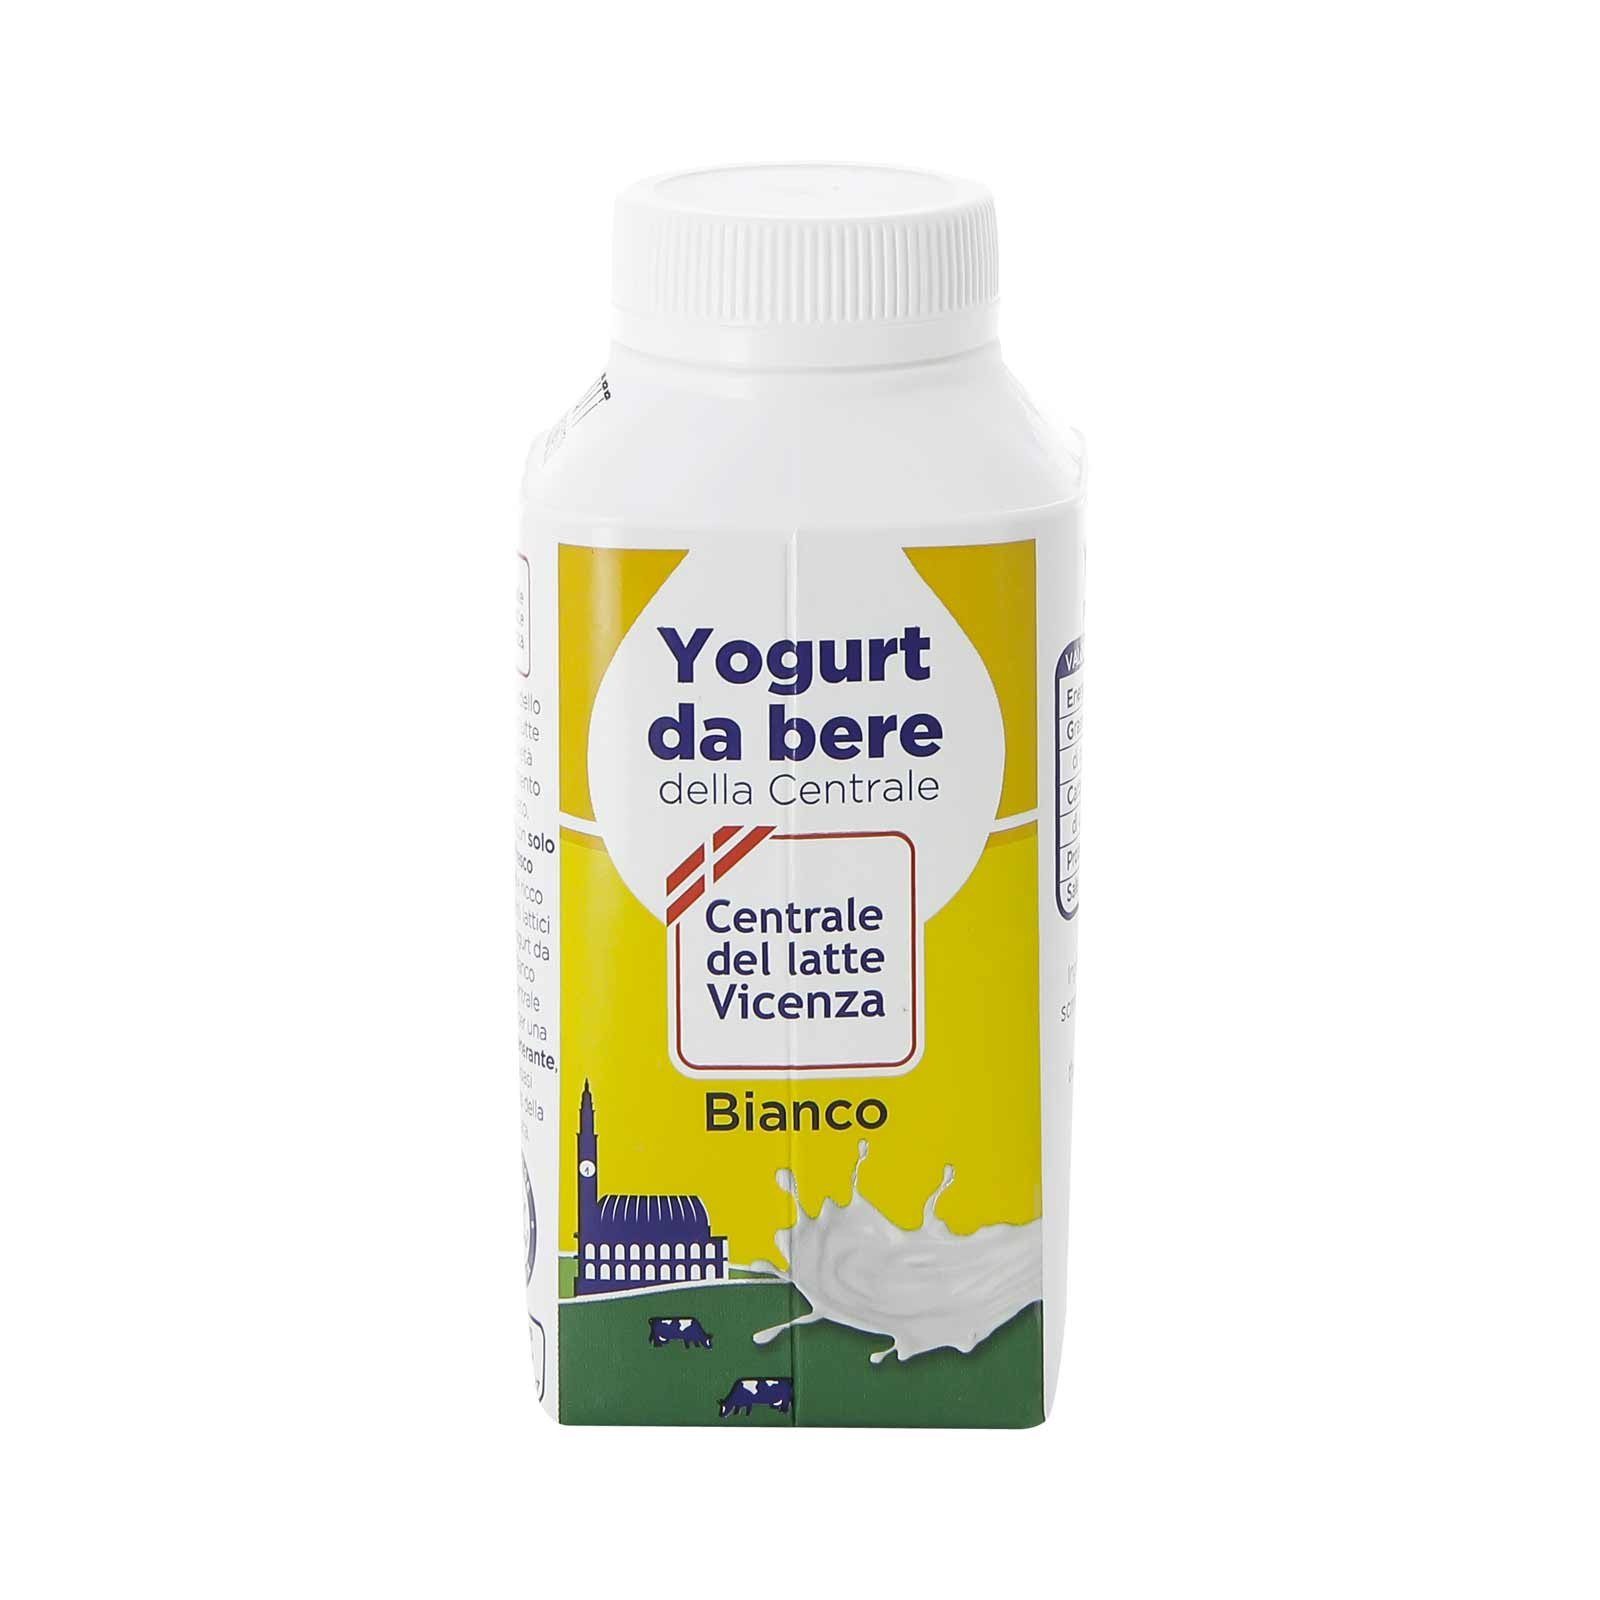 Yogurt da bere